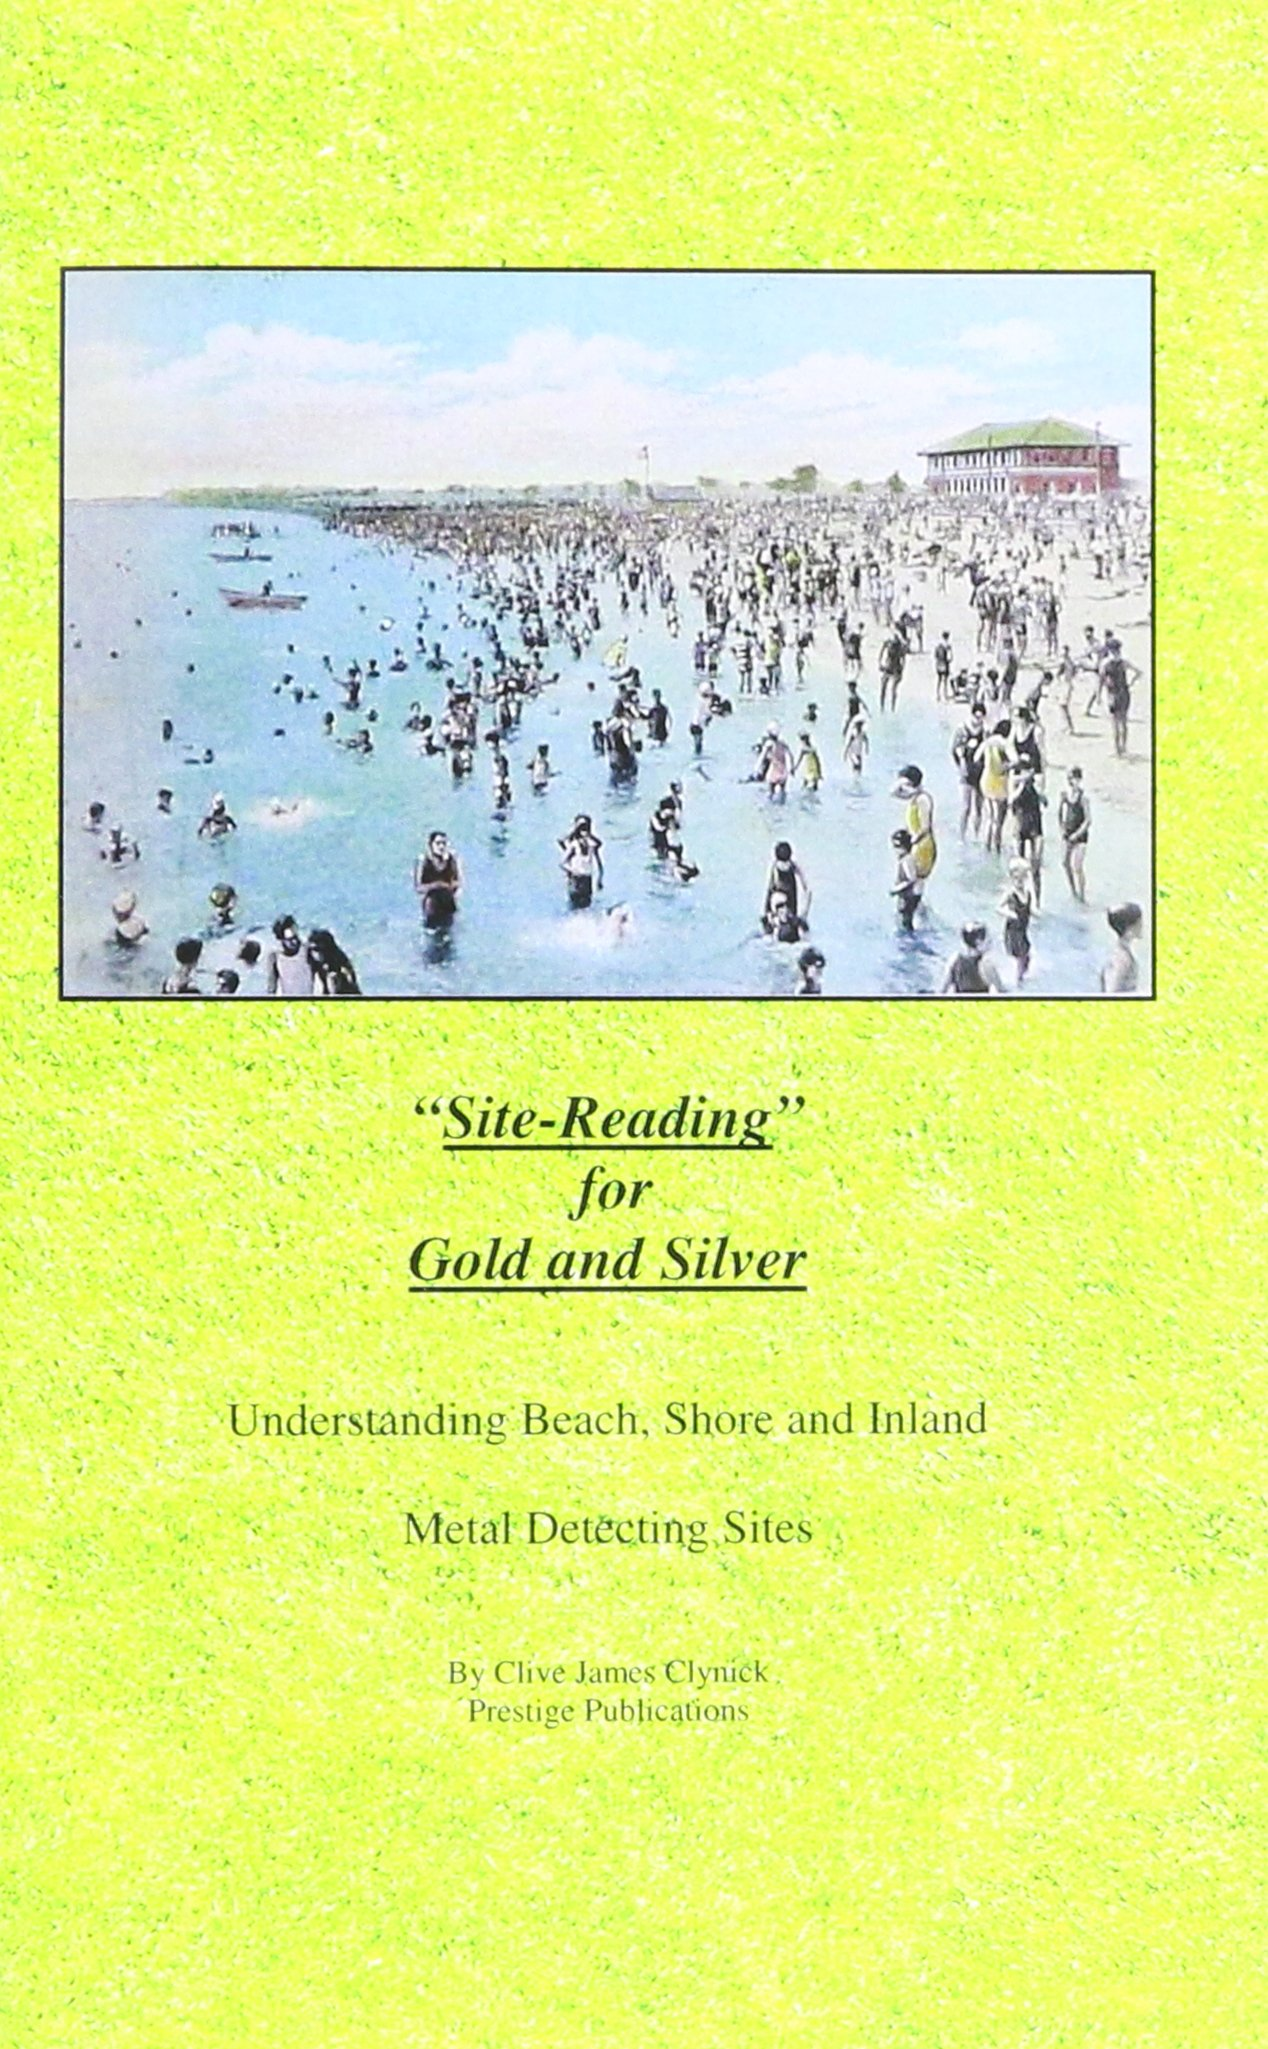 Clive James Clynick Site Reading for Gold and Silver, Understanding Beach, Stone and Inland Metal Detecting Sites